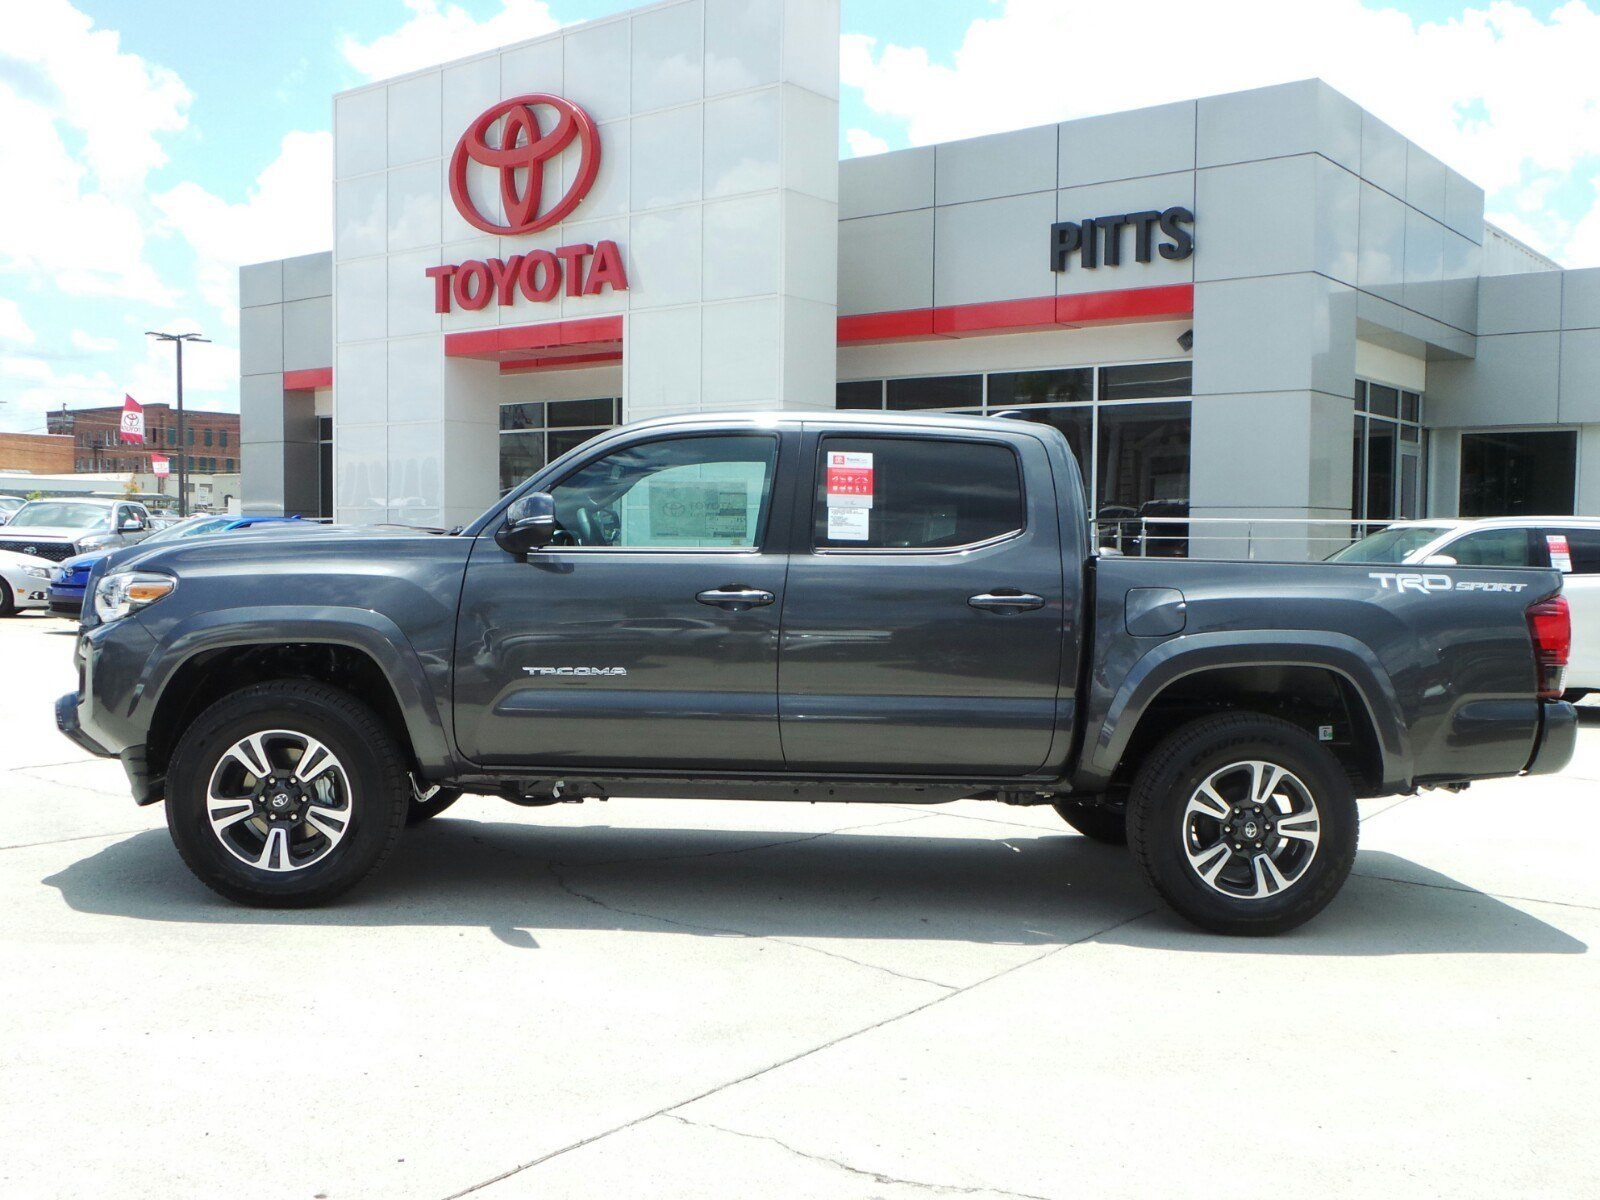 Toyota Tacoma Trd Sport >> New 2018 Toyota Tacoma Trd Sport Double Cab In Dublin 8617 Pitts